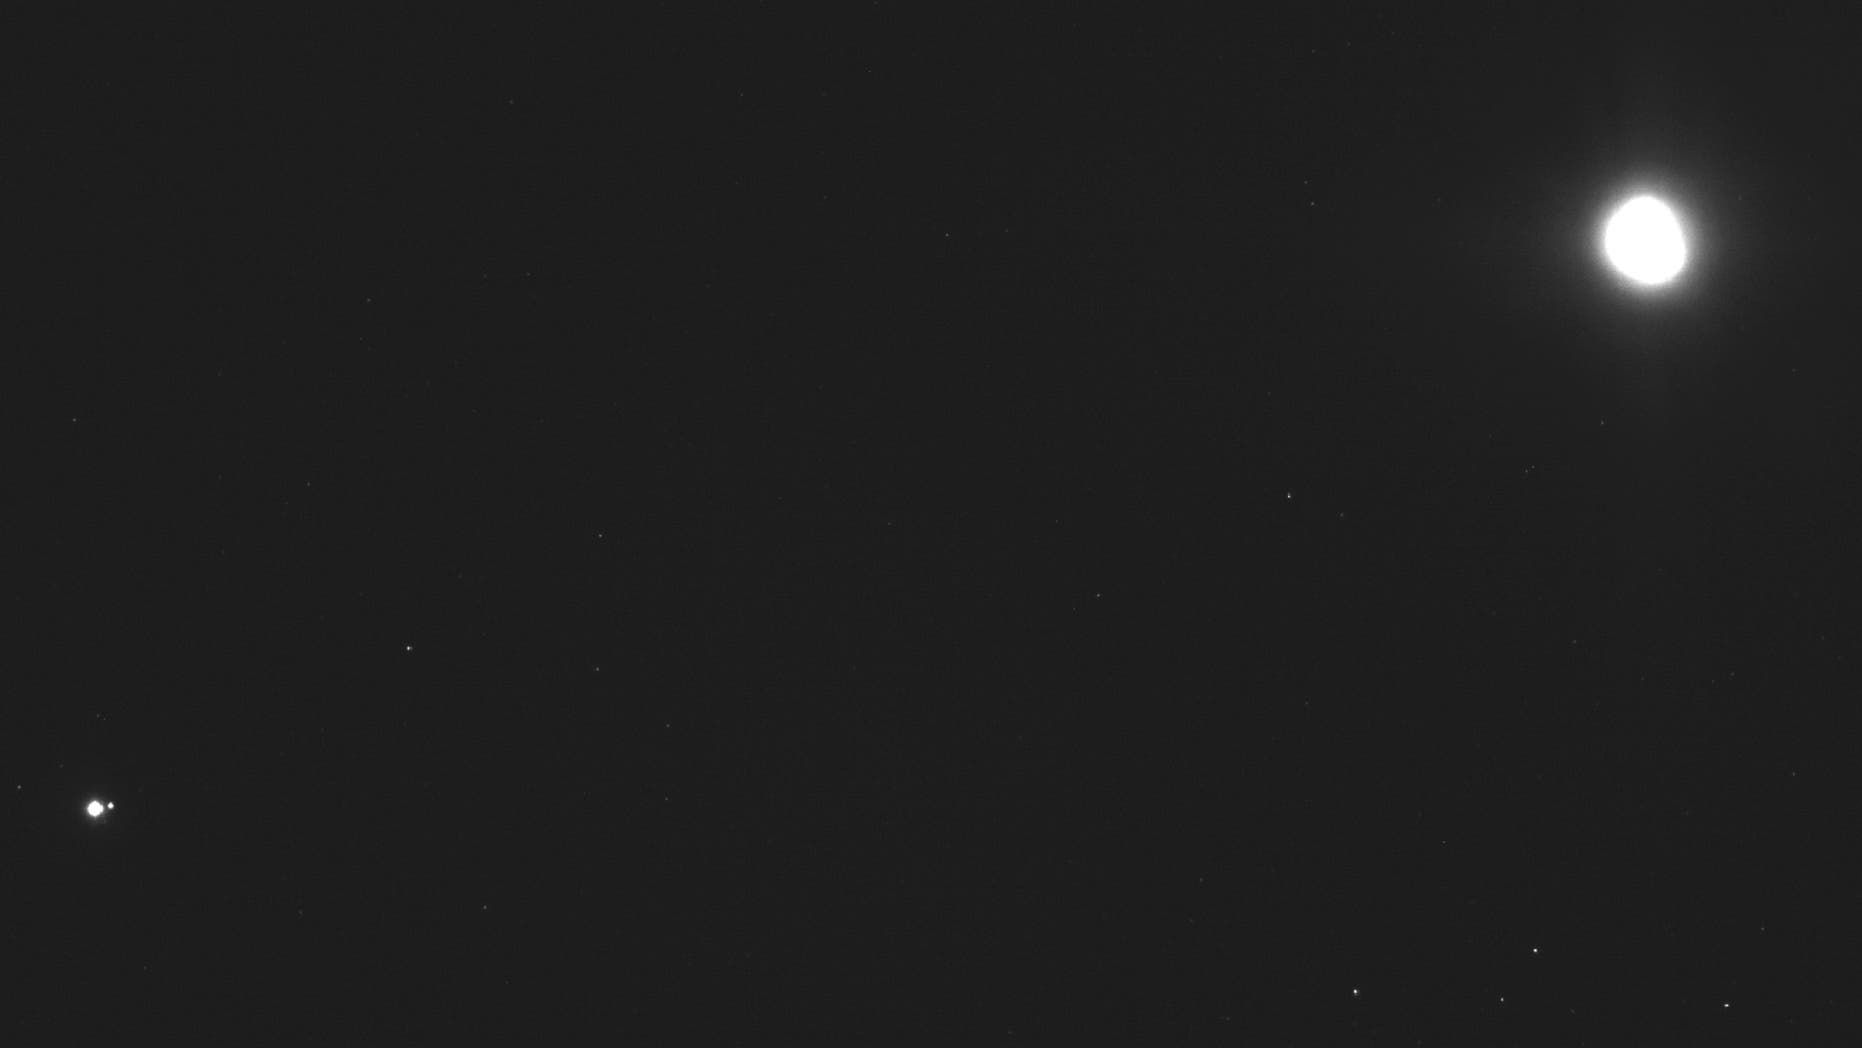 This image captured on Dec. 19, 2018, by a camera on the Osiris-Rex spacecraft shows the asteroid Bennu, top right, about 27 miles (43 kilometers) from the spacecraft, and the Earth and moon, bottom left, more than 70 million miles (110 million kilometers) away. Bennu, just 1,600 feet (500 meters) across, is the smallest celestial body ever to be orbited by a spacecraft. (NASA/Goddard/University of Arizona/Lockheed Martin Space via AP)